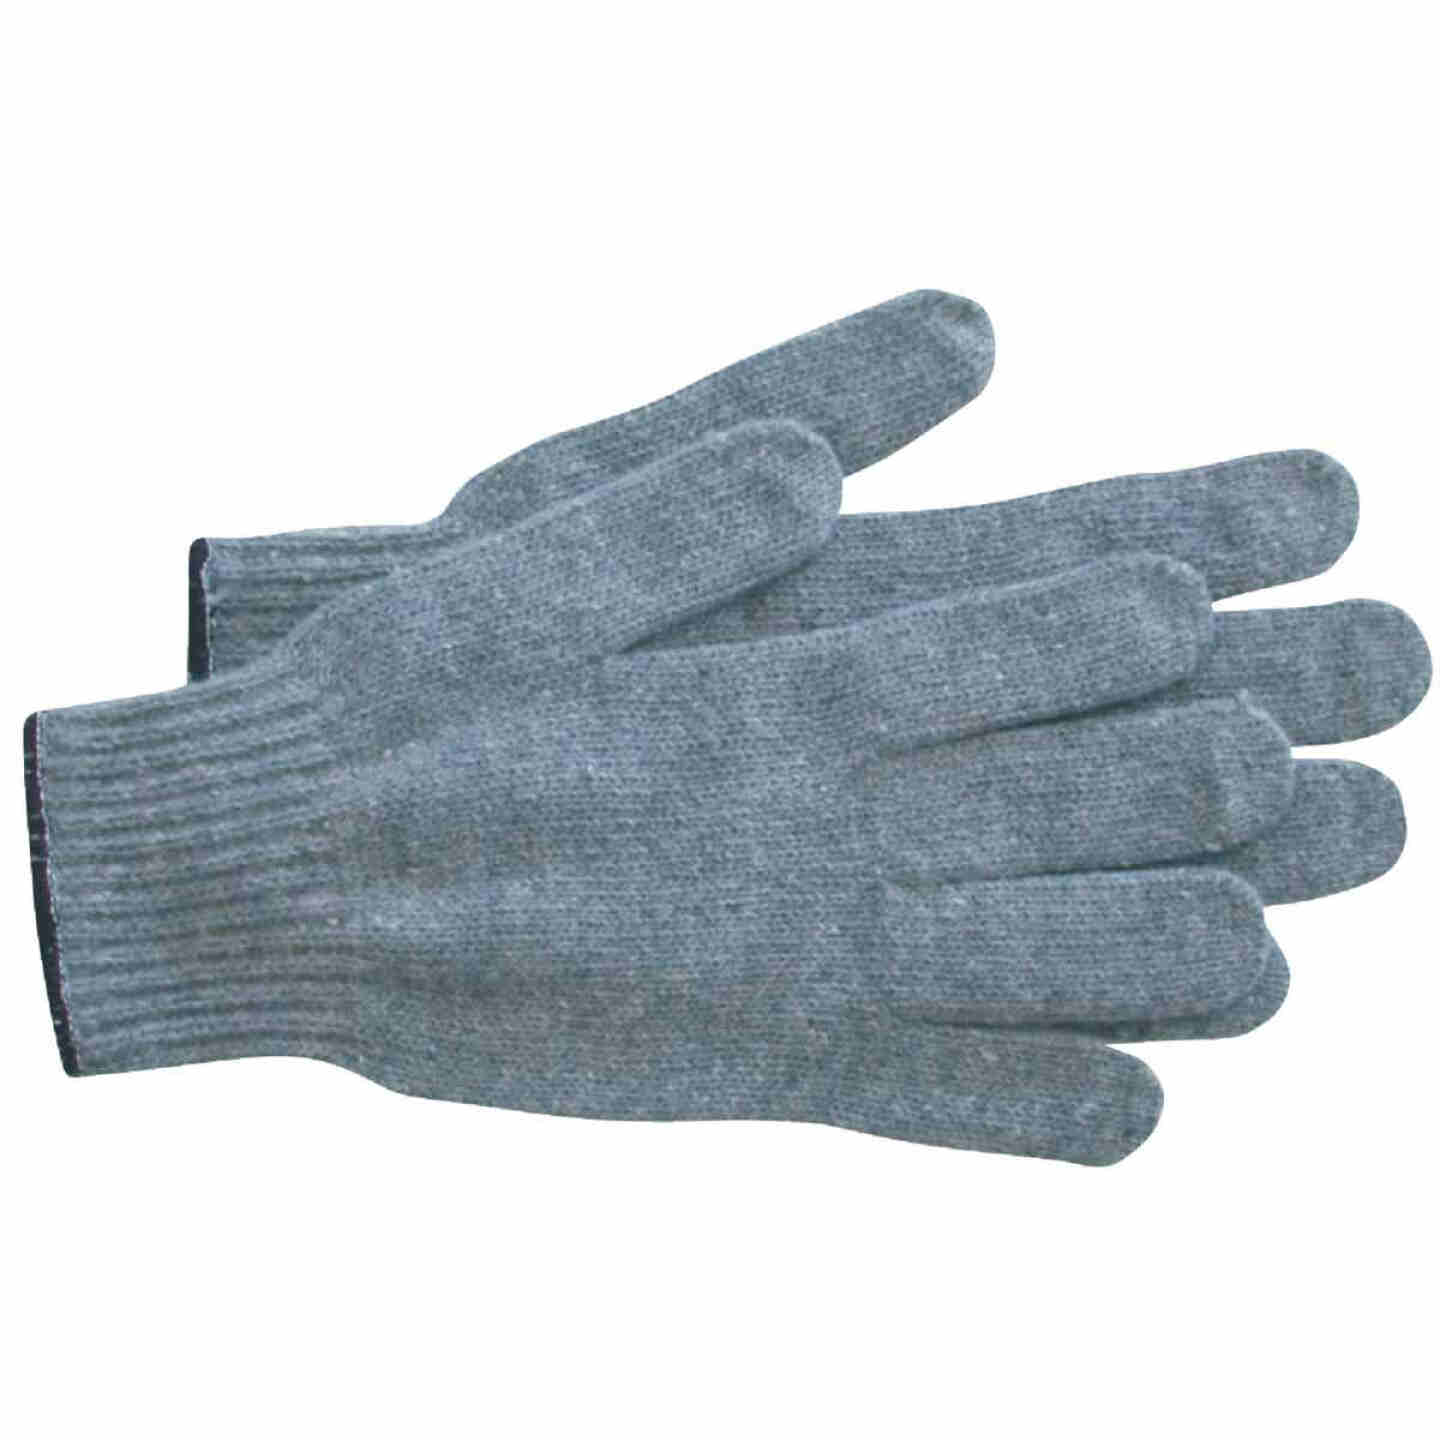 PIP Men's Large Cotton/Polyester Work Glove, Gray (12-Pack) Image 1